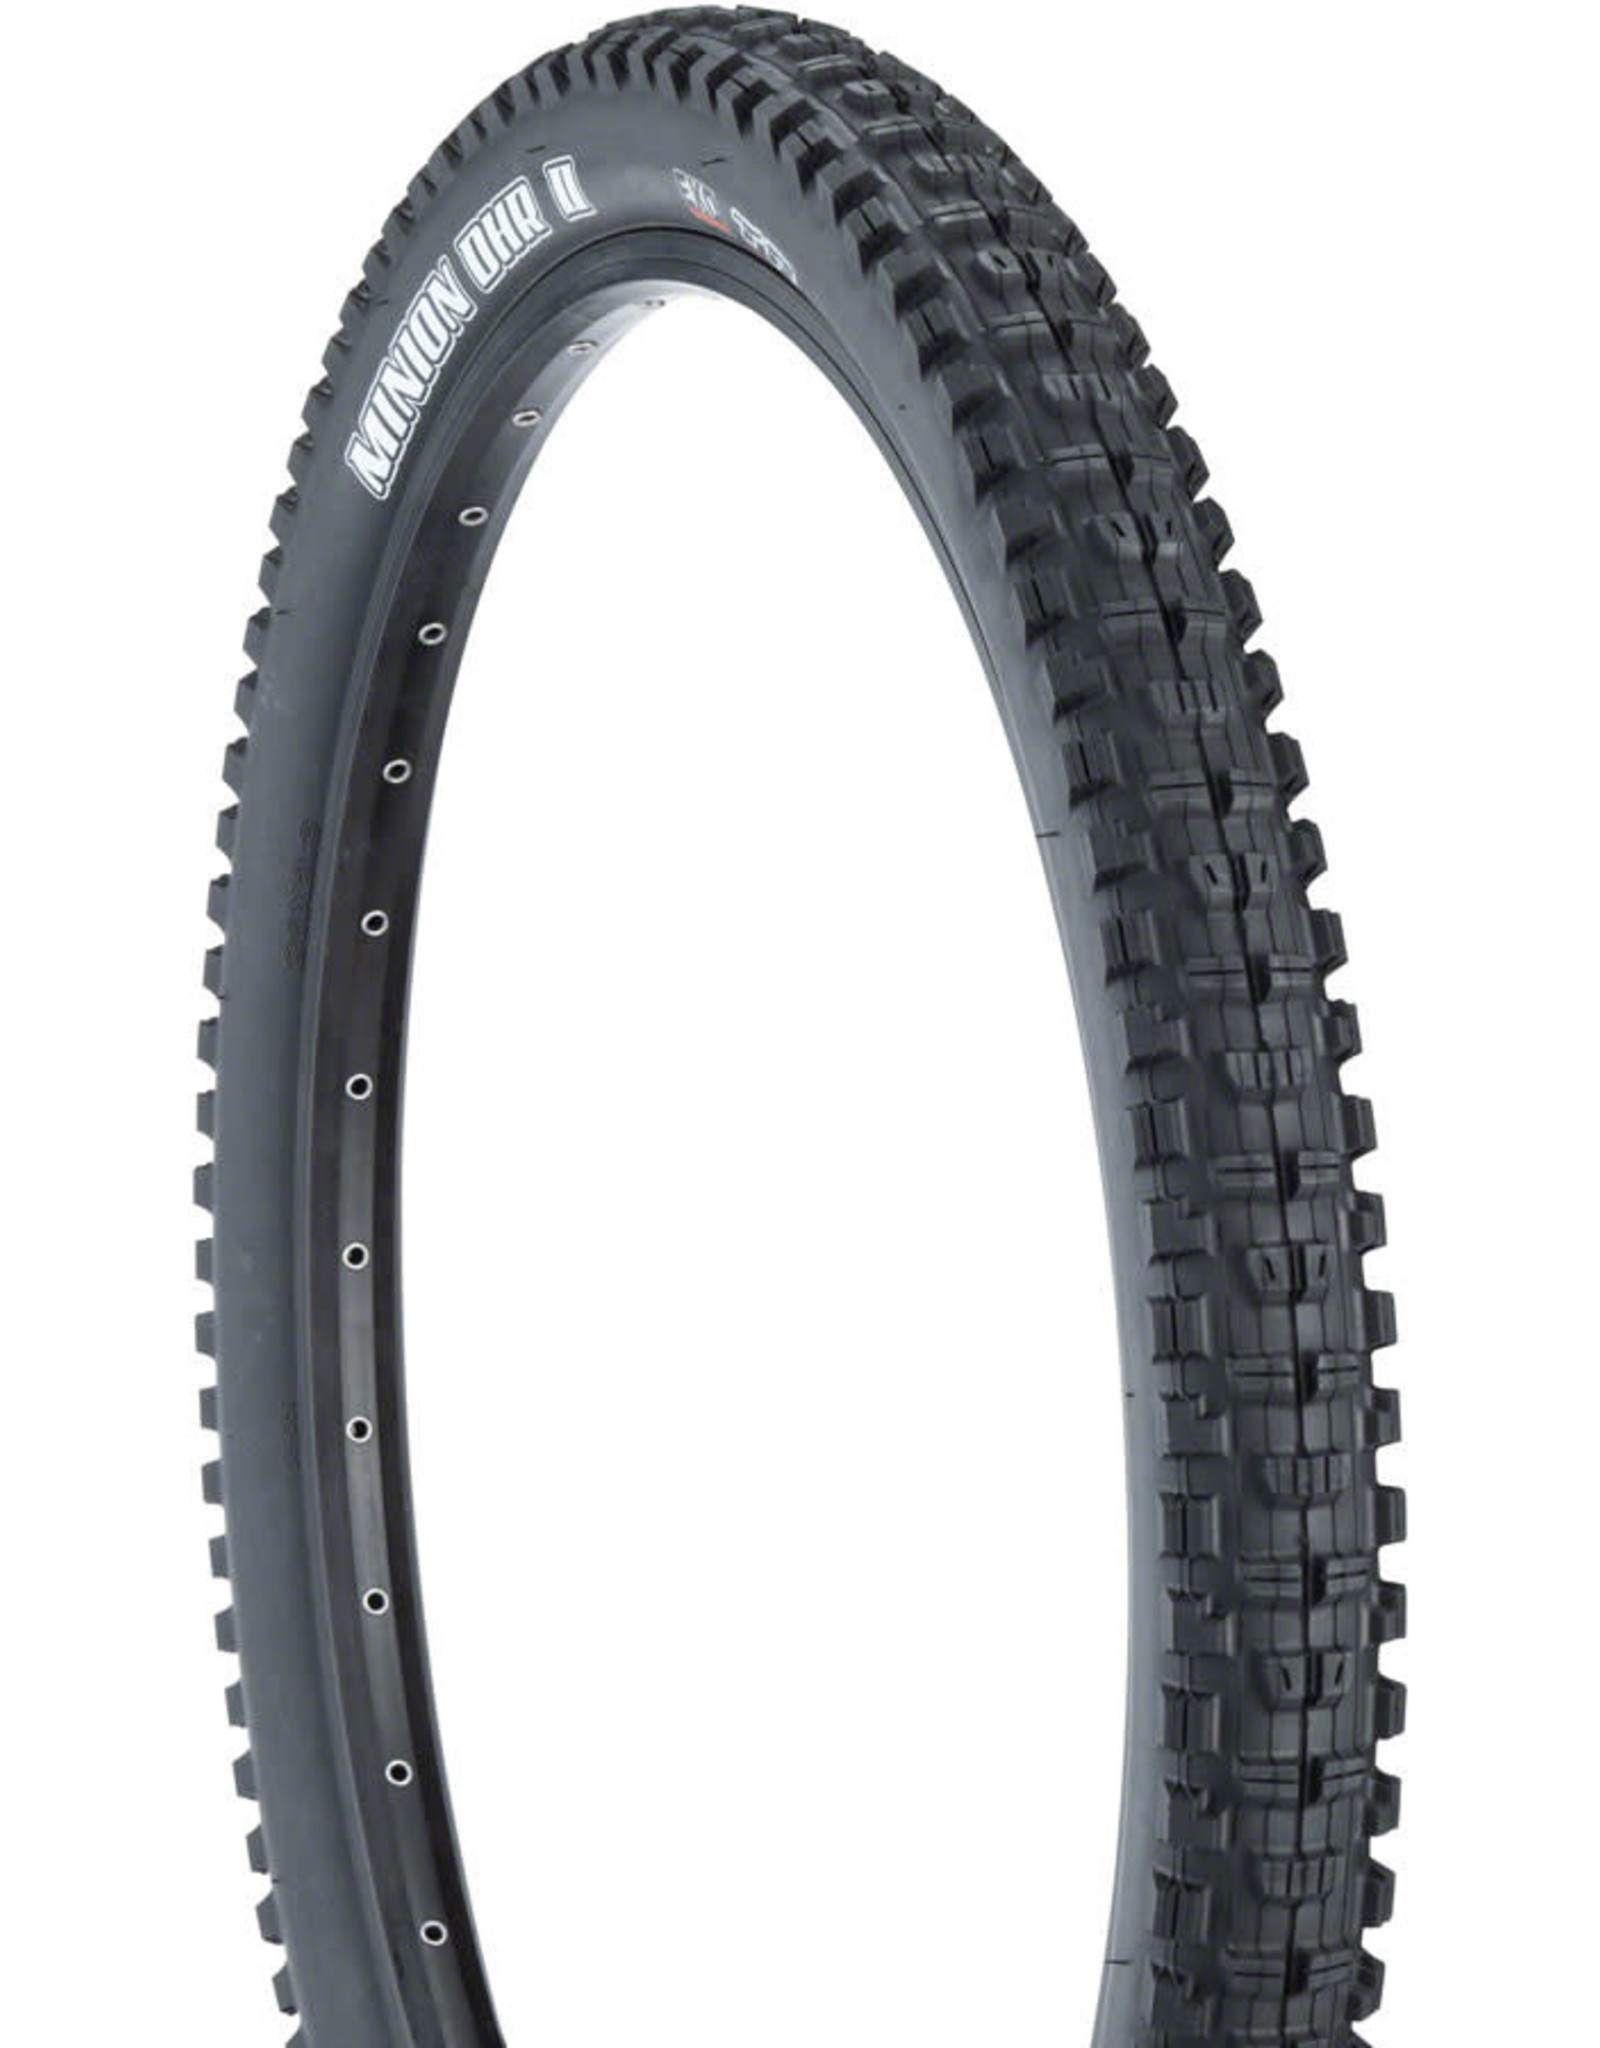 Maxxis Maxxis Minion DHR II Tire - 29 x 2.4, Tubeless, Folding, Black, 3C Maxx Terra, EXO+, Wide Trail